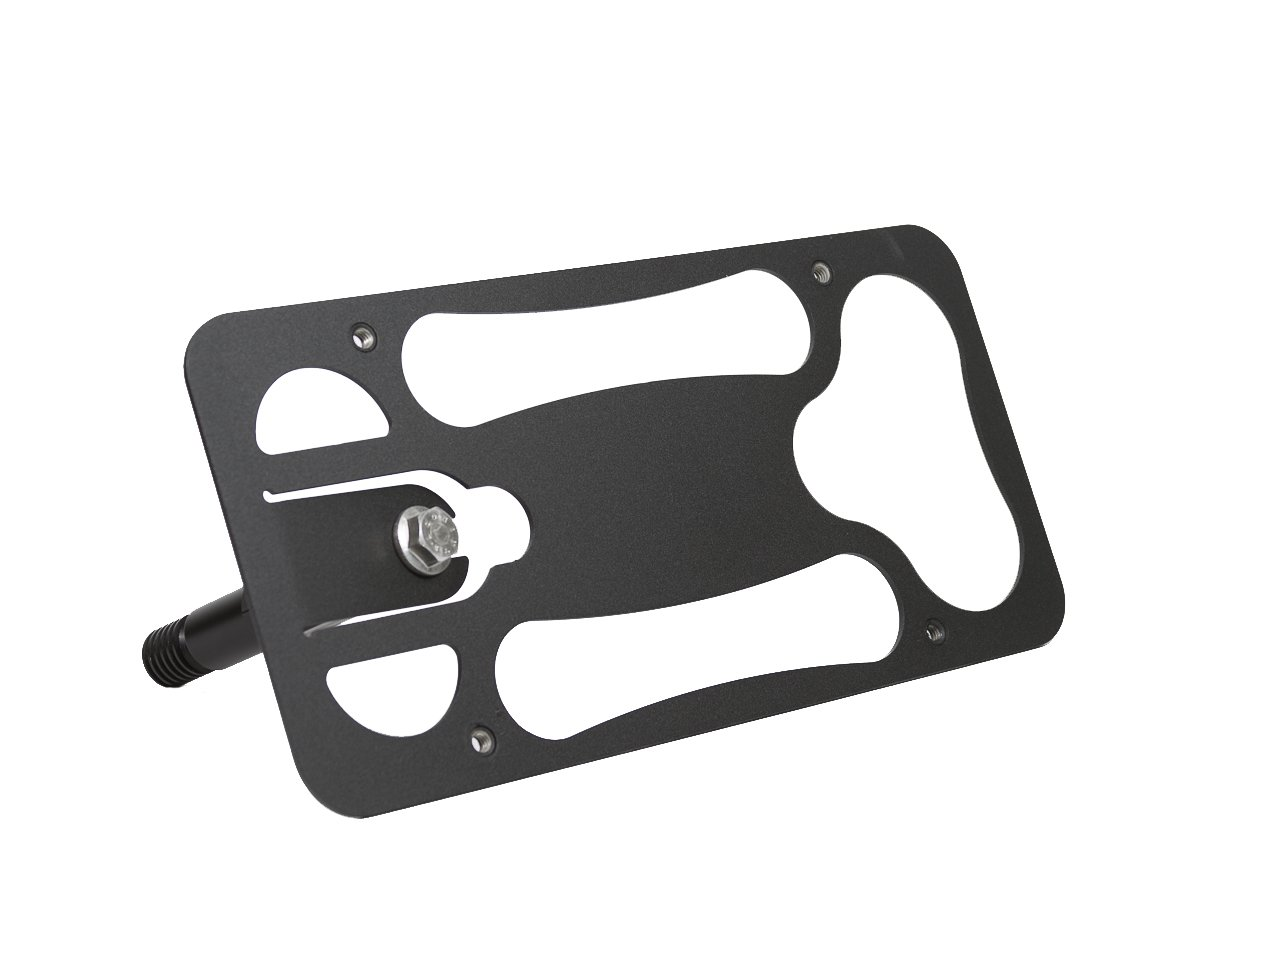 CravenSpeed The Platypus License Plate Mount for Mini Cooper (F56) 2014-2019 | No Drilling | Installs in Seconds | Made of Stainless Steel & Aluminum | Made in USA by CravenSpeed (Image #1)